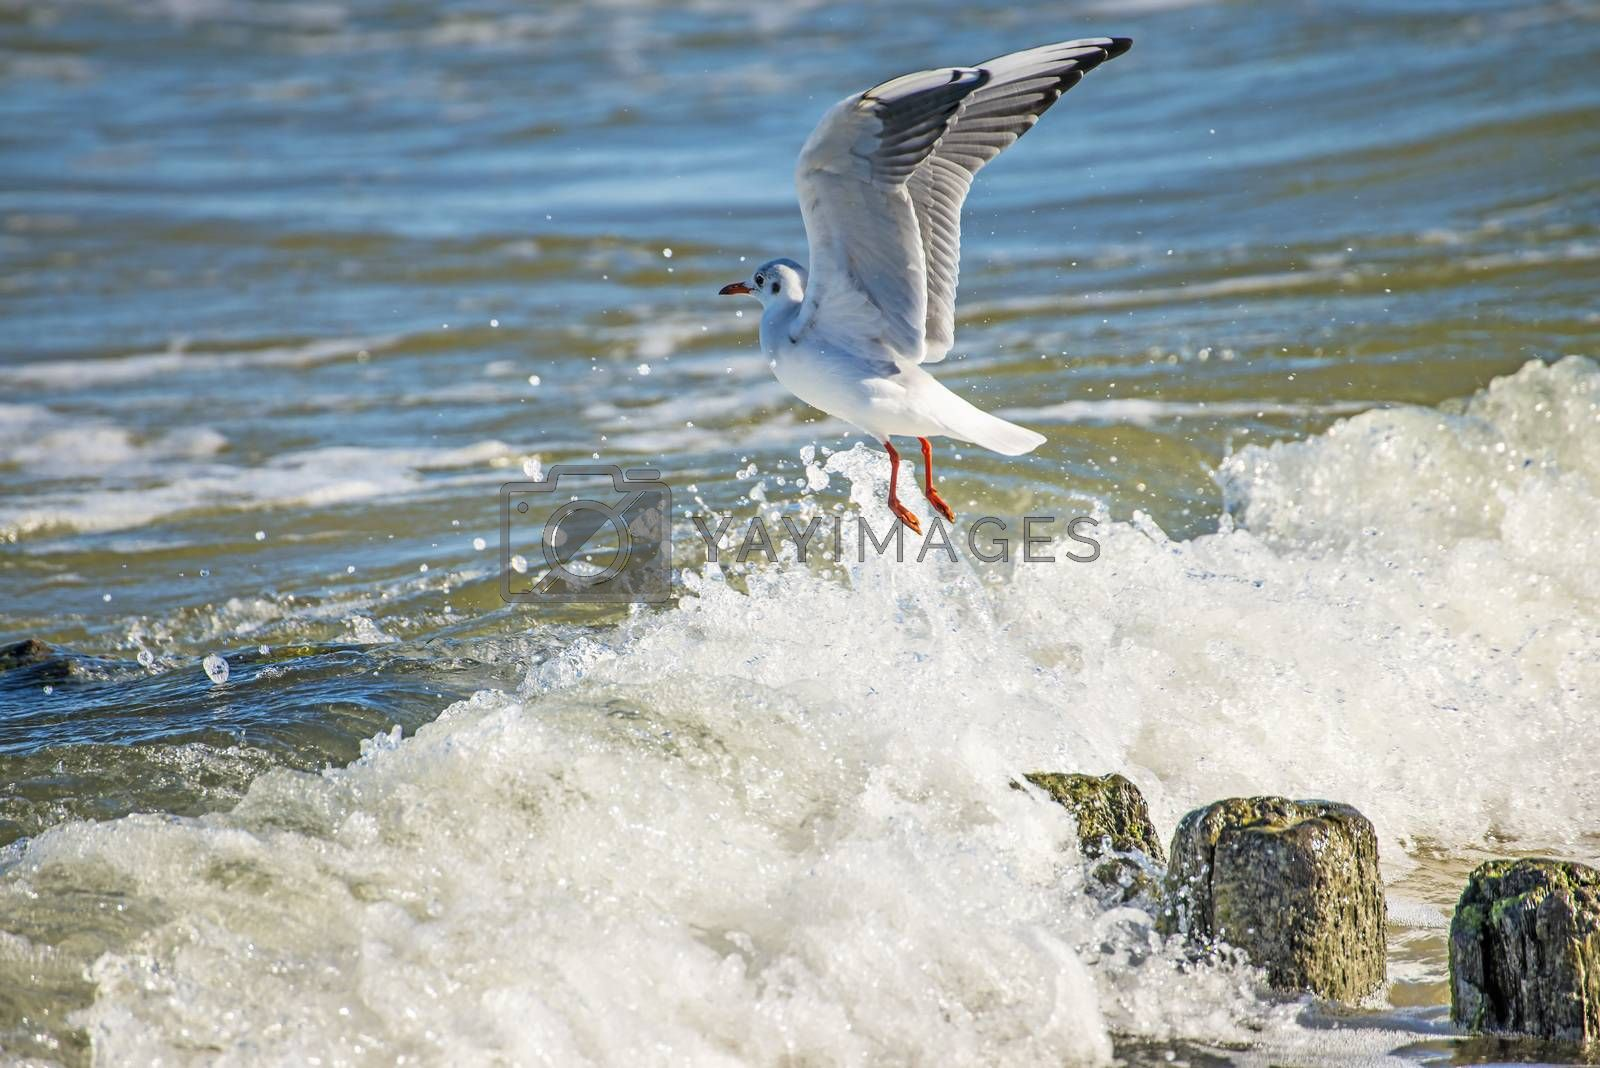 Black-headed gull over groynes in the Baltic Sea